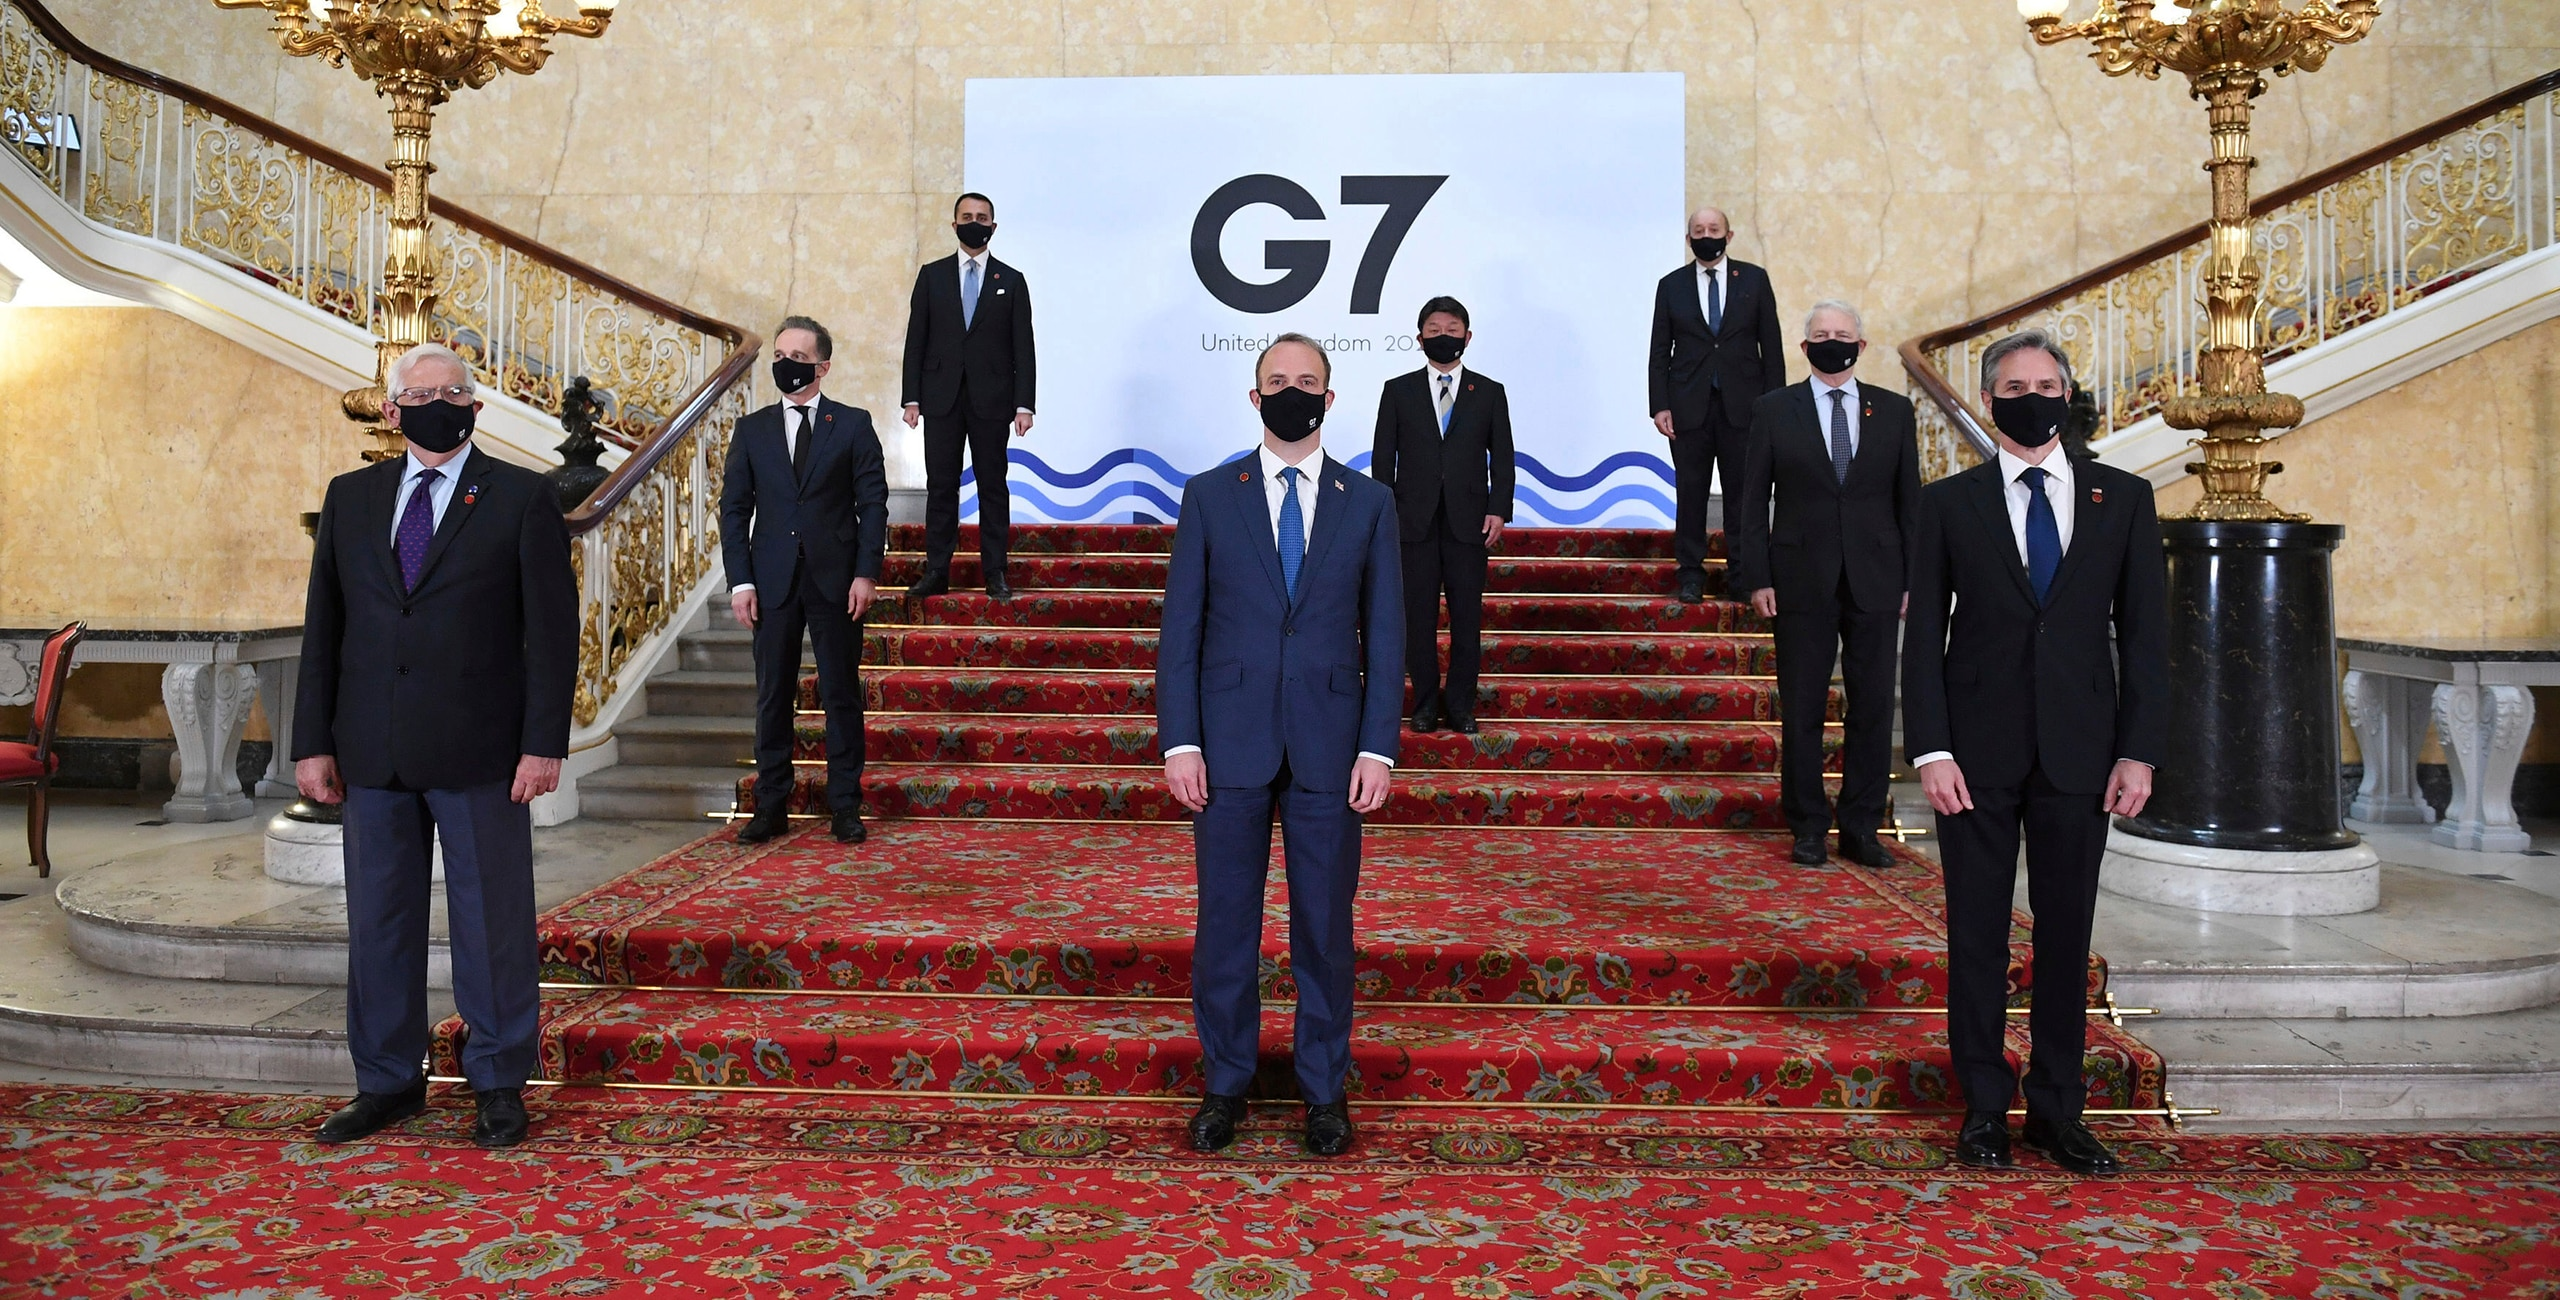 G7 foreign ministers wear face masks and are socially distanced for a group photo, with front row from left, European High Representative of the Union for Foreign Affairs Josep Borrell, British Foreign Secretary Dominic Raab, U.S. Secretary of State Antony Blinken, middle row left to right, German Federal Minister for Foreign Affairs Heiko Maas, Japanese Minister of Foreign Affairs Motegi Toshimitsu and Canadian Minister of Foreign Affairs Marc Garneau, back row from left, Italian Minister of Foreign Affairs Luigi Di Maio and French Minister of Europe and Foreign Affairs Jean-Yves Le Drian, on the stairs at Lancaster House in London ahead of bilateral talks at the G7 Foreign and Development Ministers meeting in London, Tuesday May 4, 2021. [AP image]